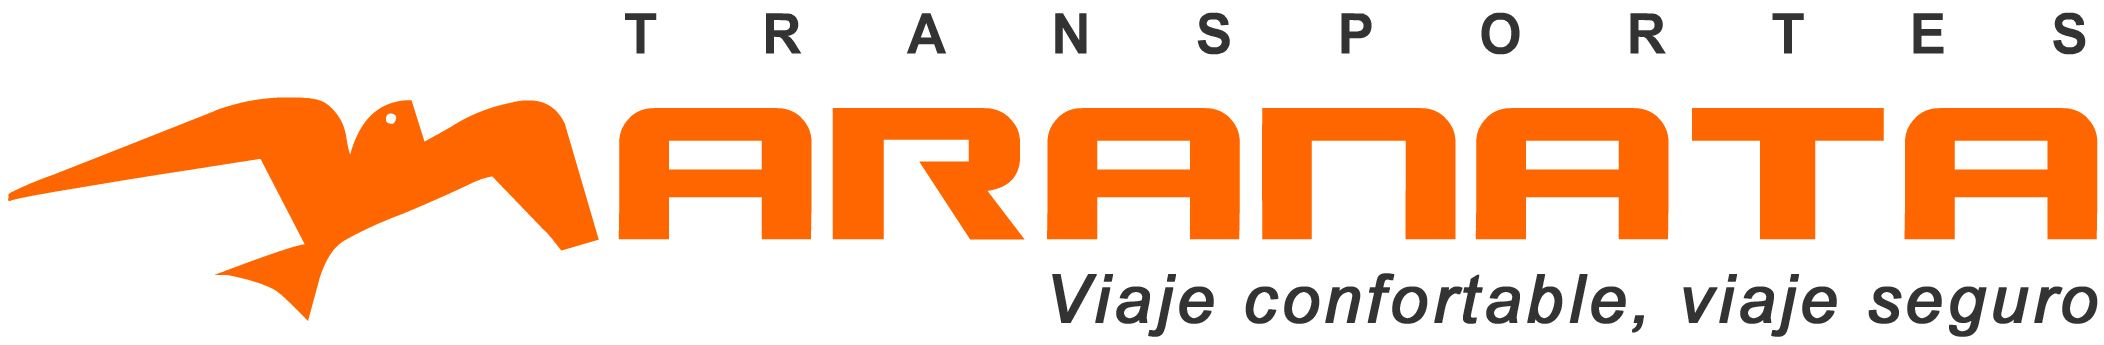 www.transportesmaranata.cl